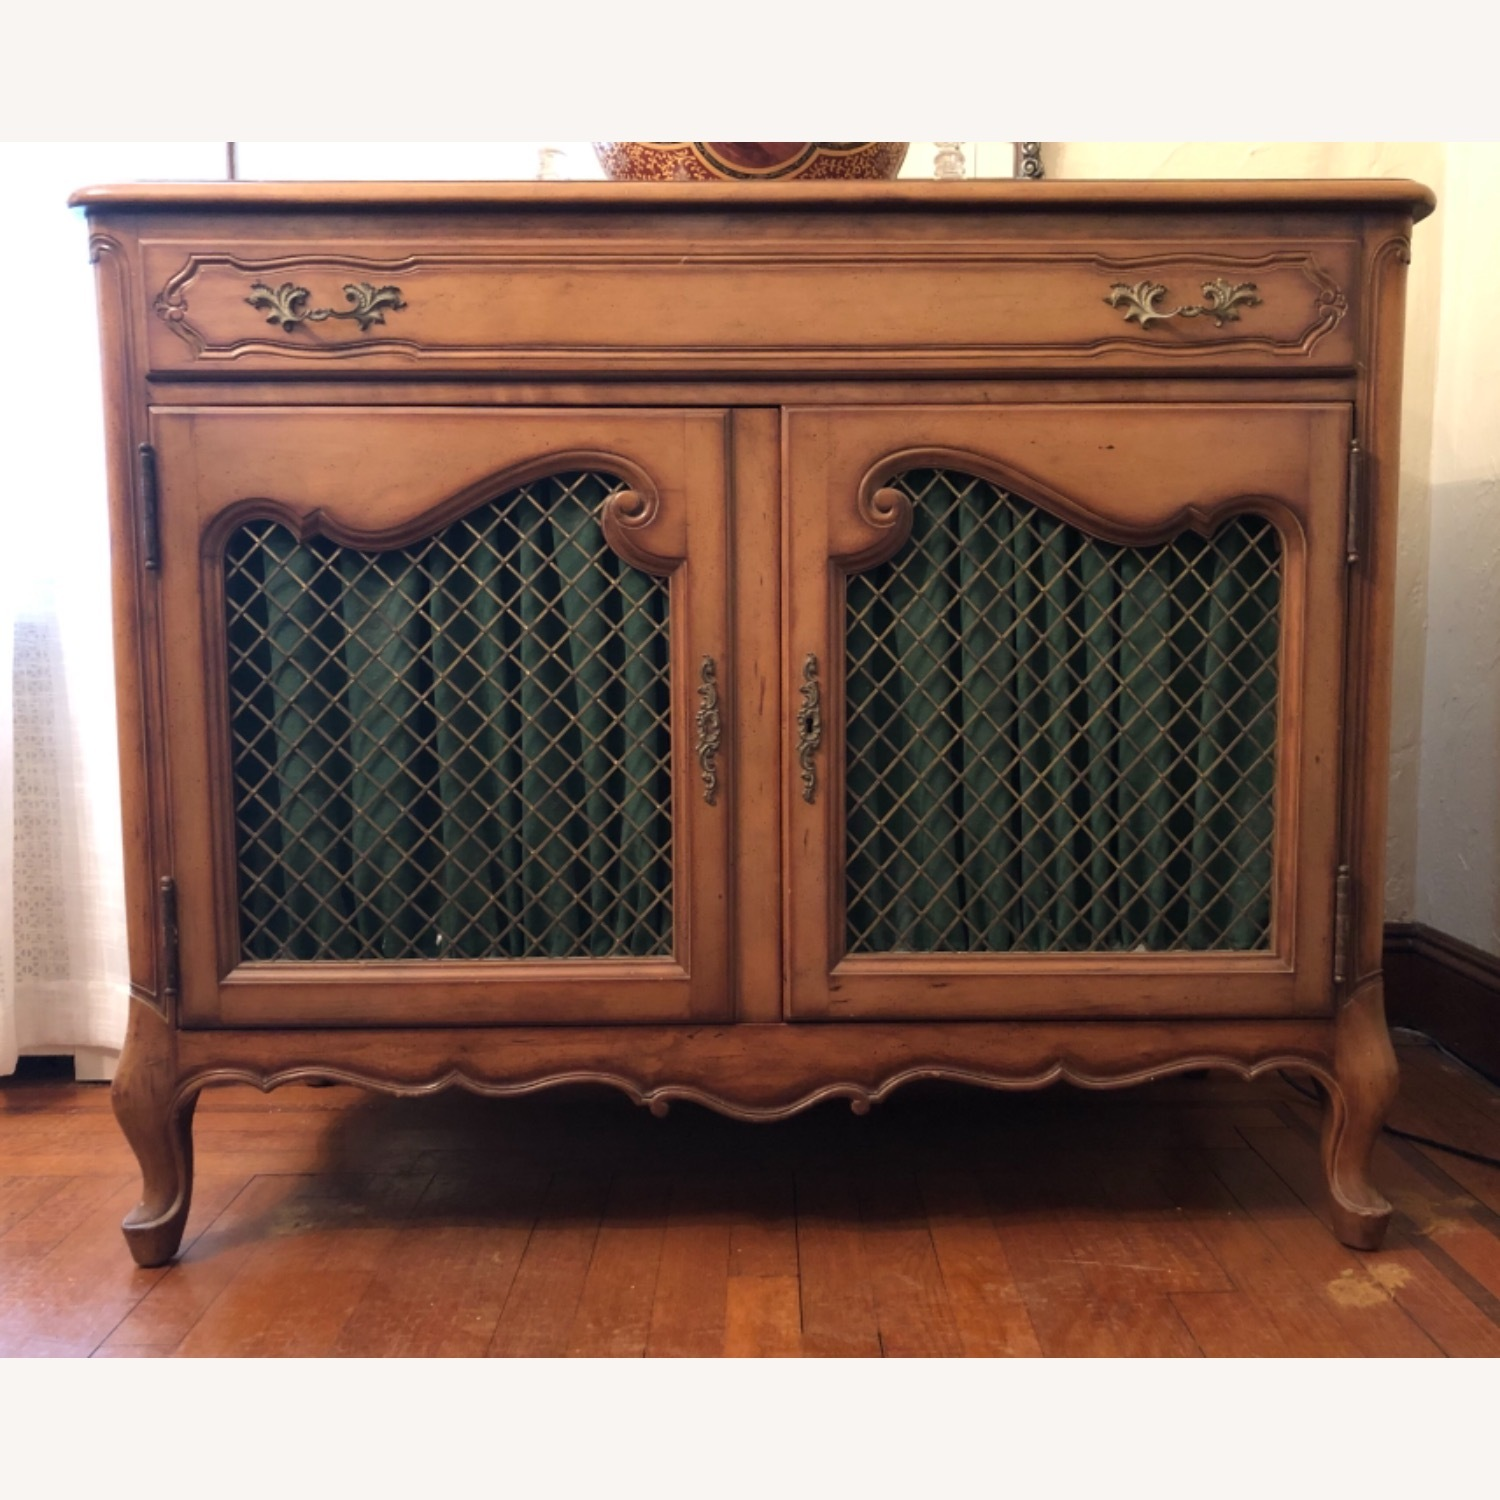 Antique Cherry Wood Sideboard - image-1